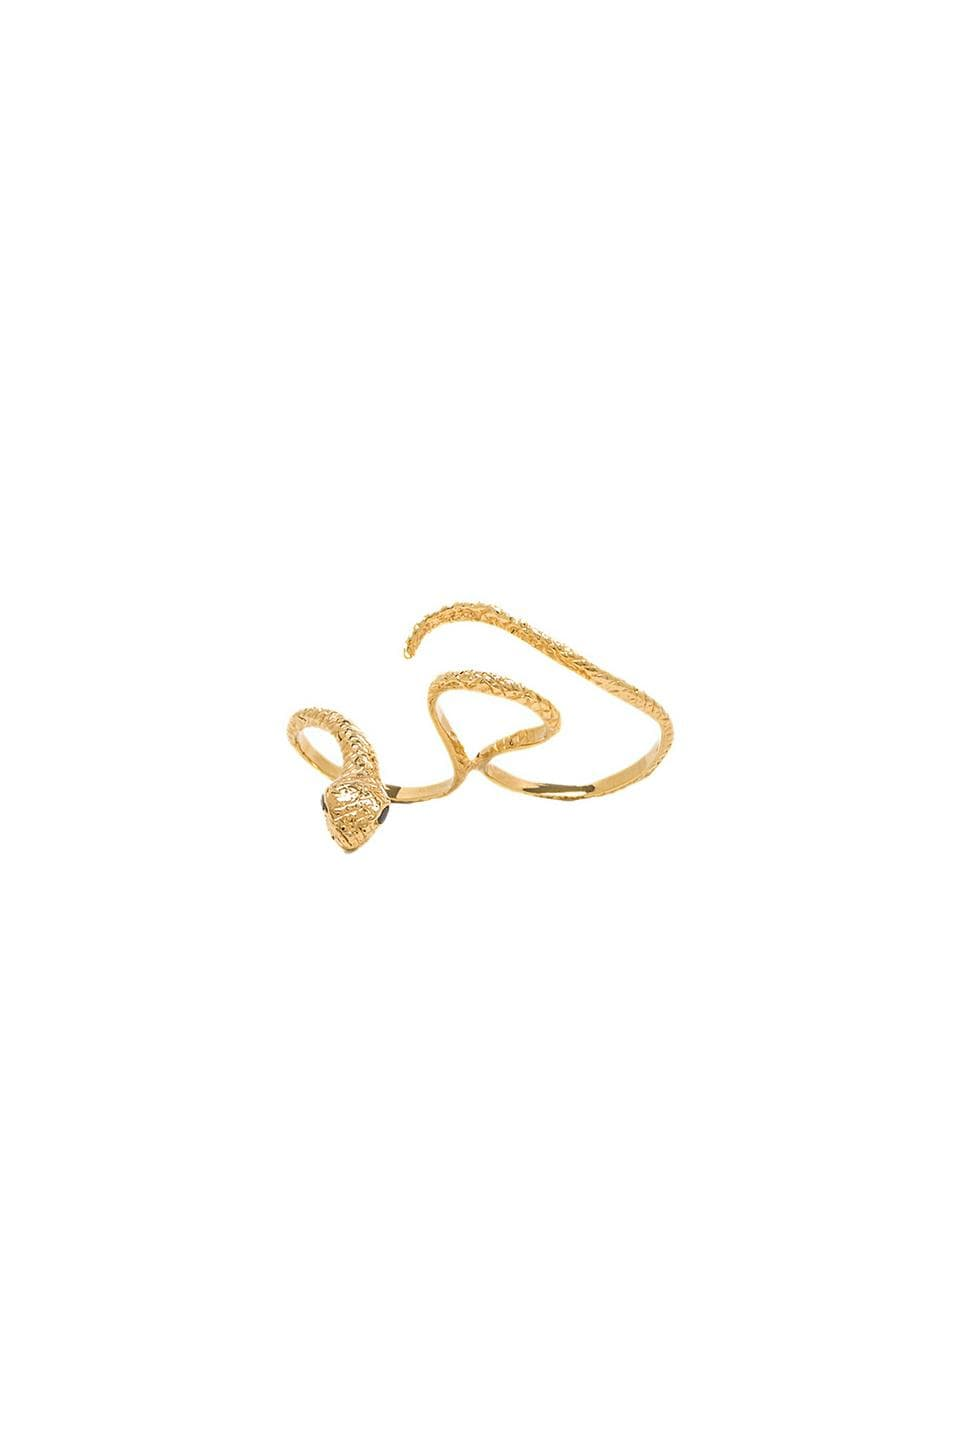 joolz by Martha Calvo Snake Knuckle Ring in Gold & Black